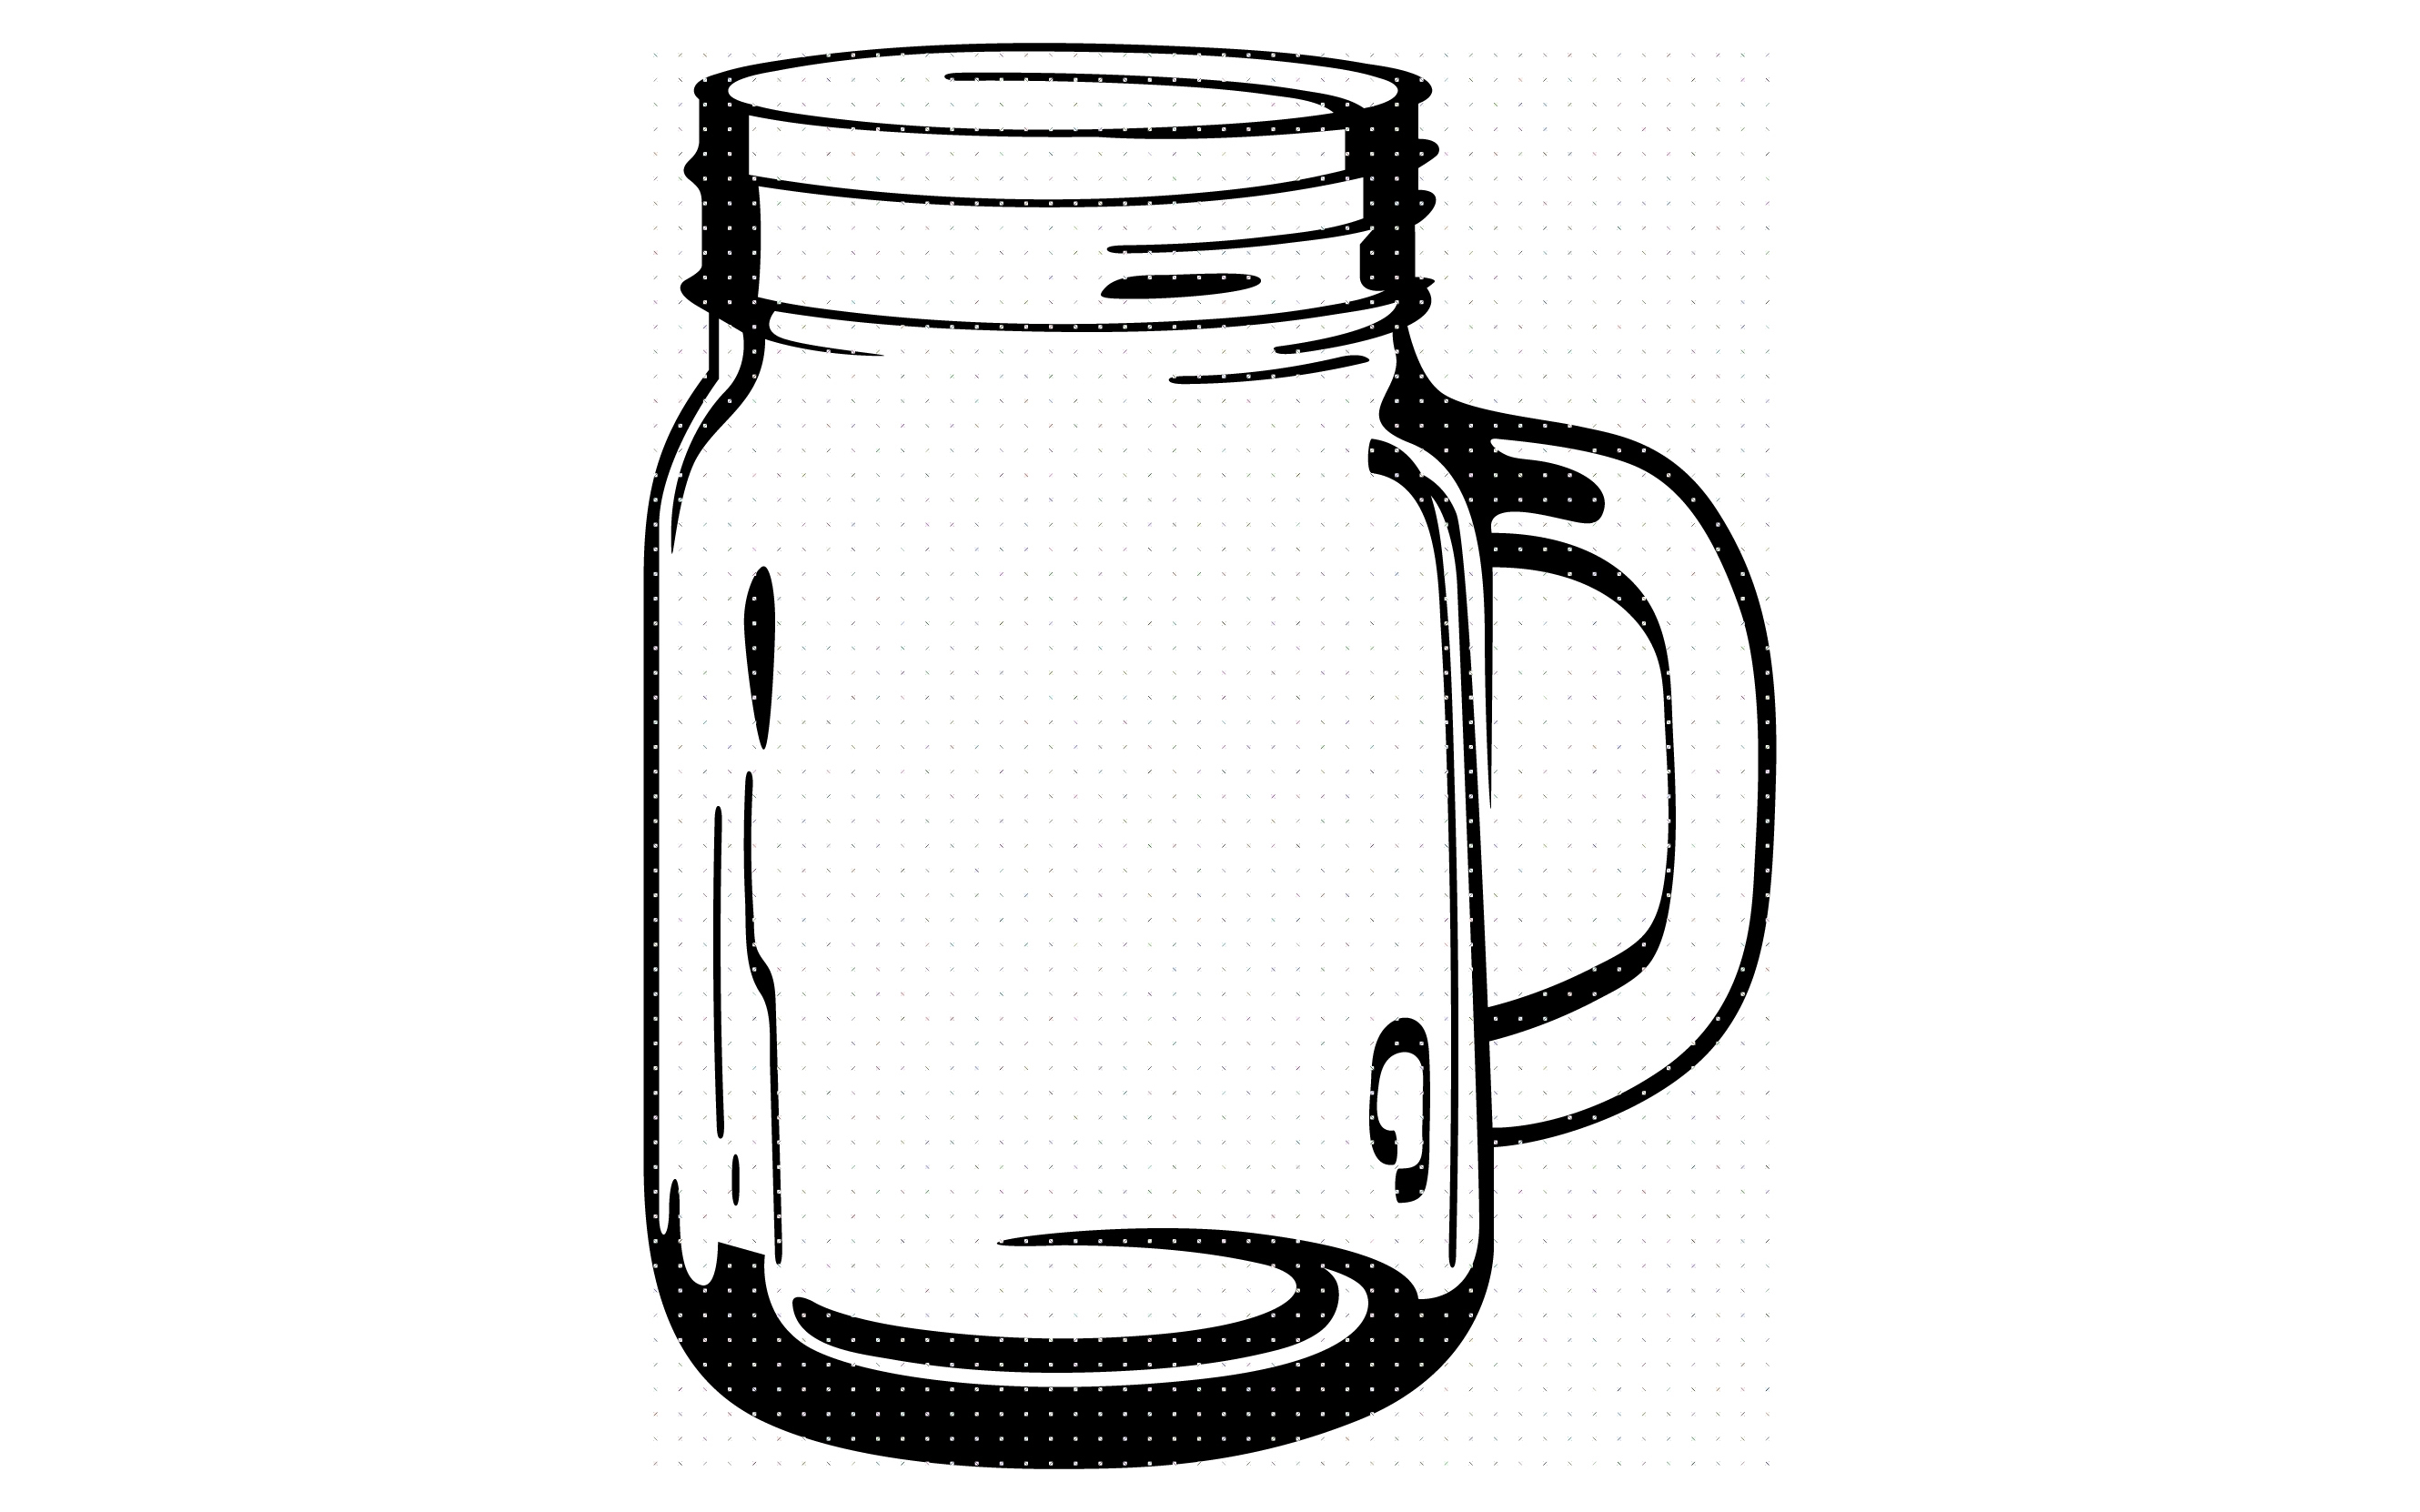 Download Free Glass Mason Jar Graphic By Crafteroks Creative Fabrica for Cricut Explore, Silhouette and other cutting machines.